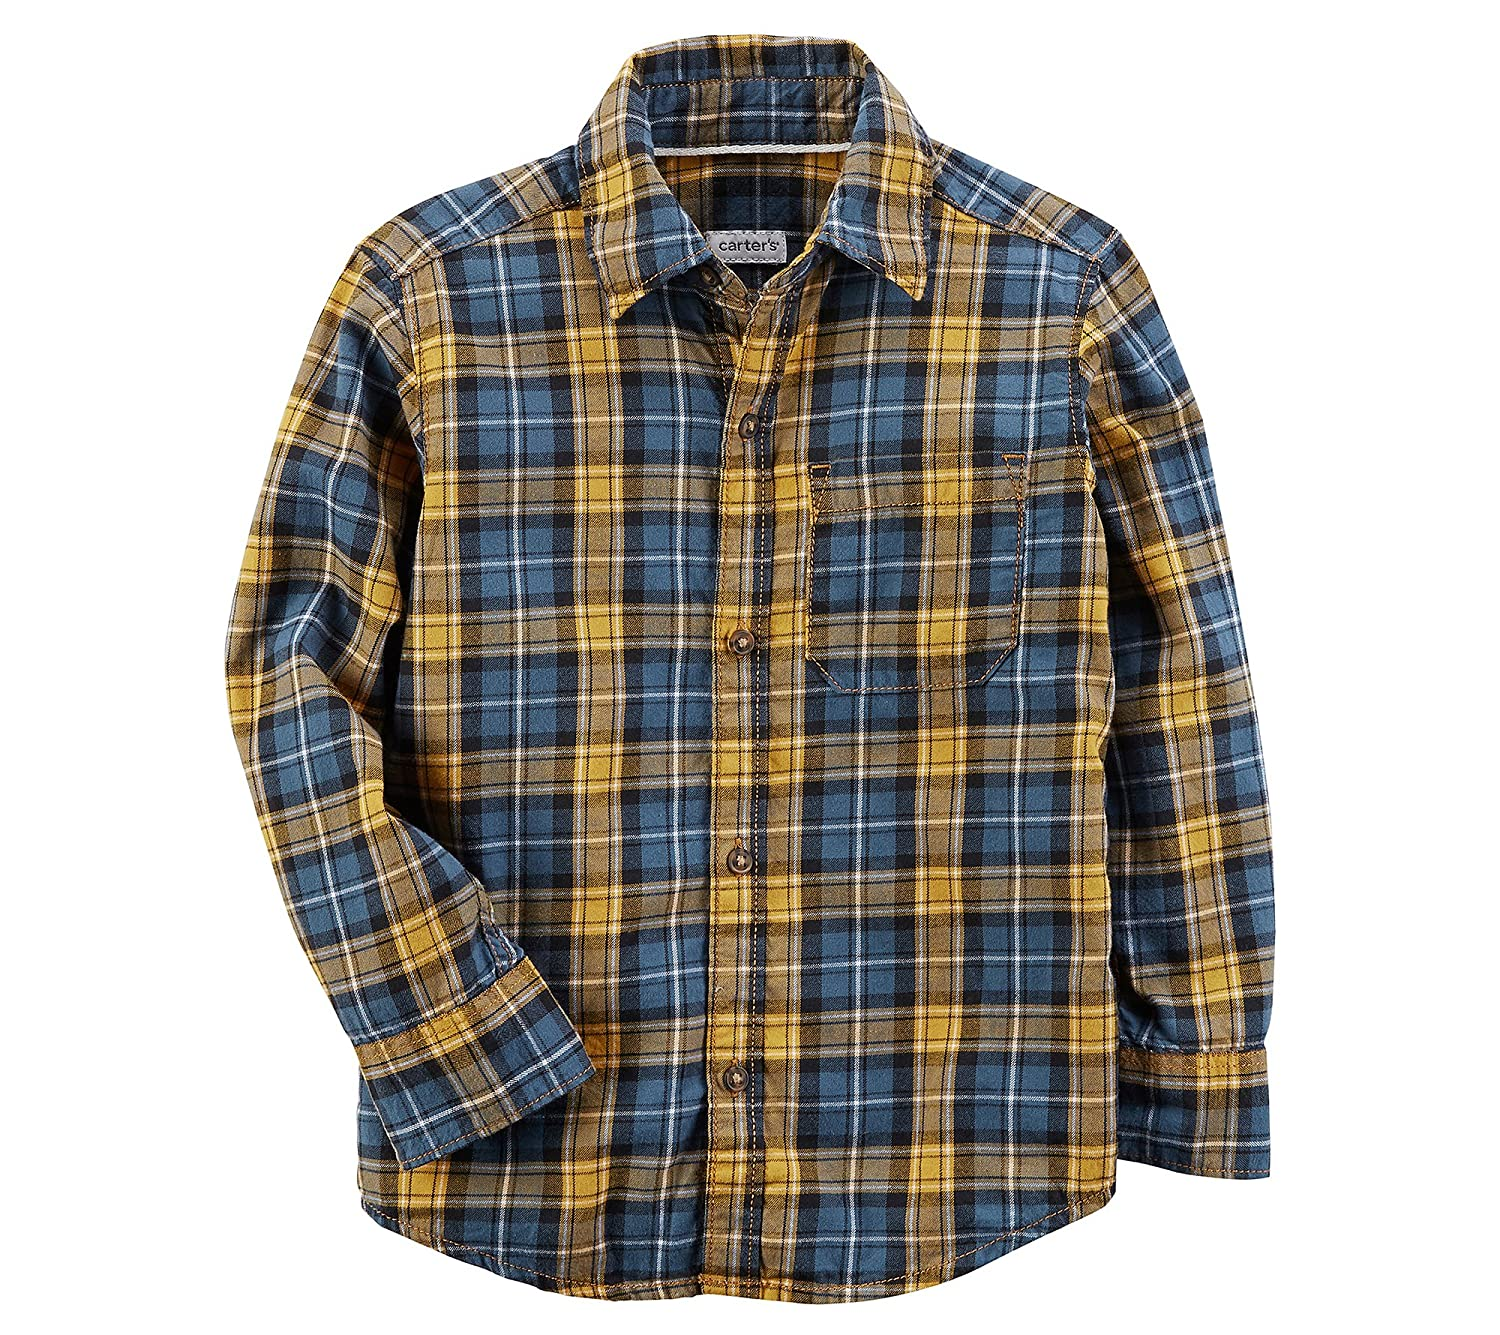 Carter's Baby Boys' Plaid Button-Front Shirt 225H082